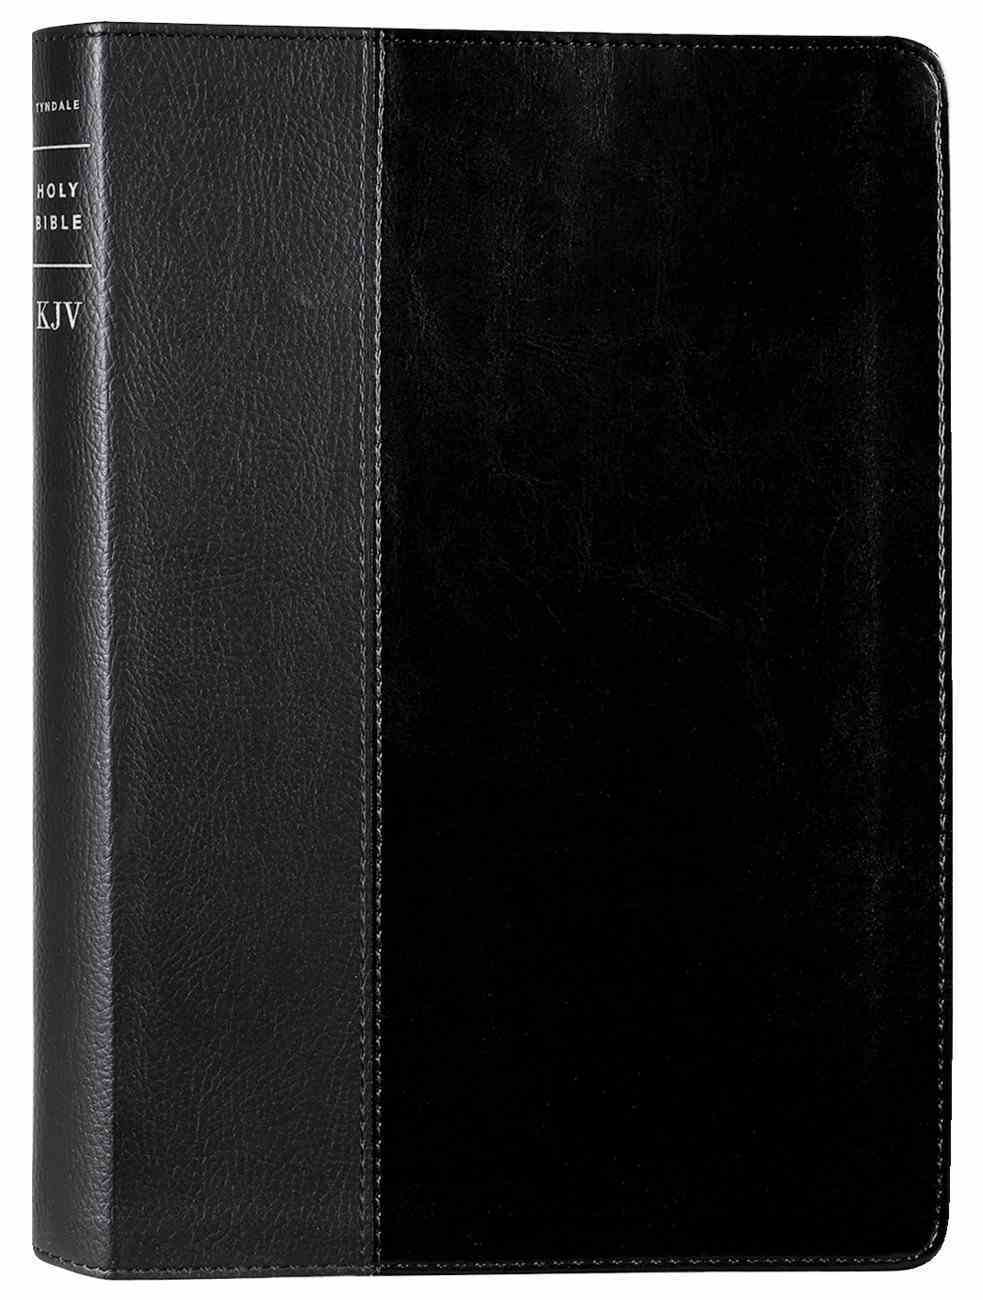 KJV Large Print Thinline Reference Bible Filament Enabled Edition Black & Onyx (Red Letter Edition) Imitation Leather